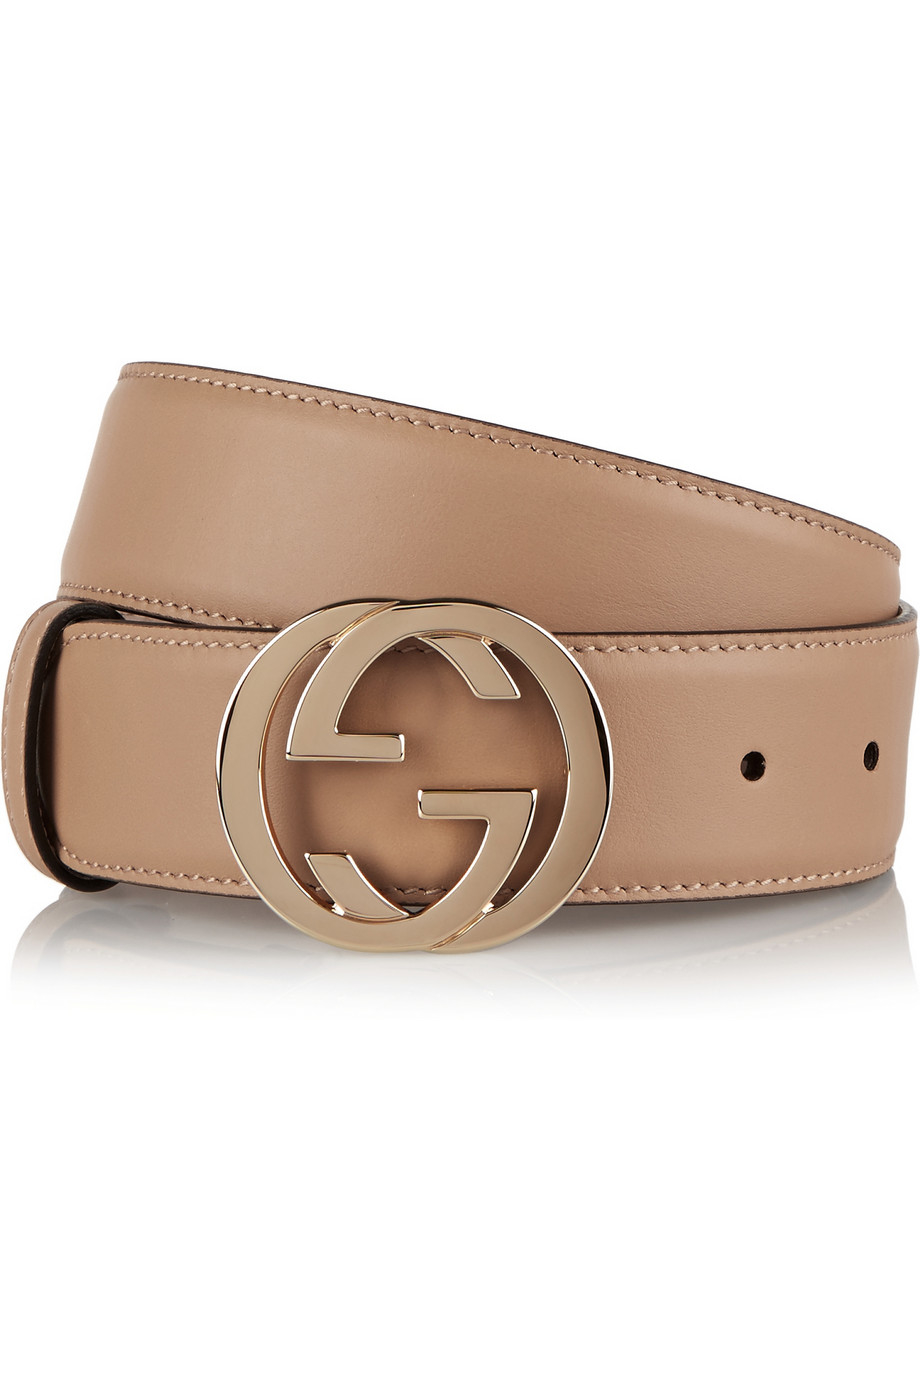 Find a great selection of men's leather belts at vip7fps.tk Browse leather belts by color, brand, price, size and more. Totally free shipping and returns.